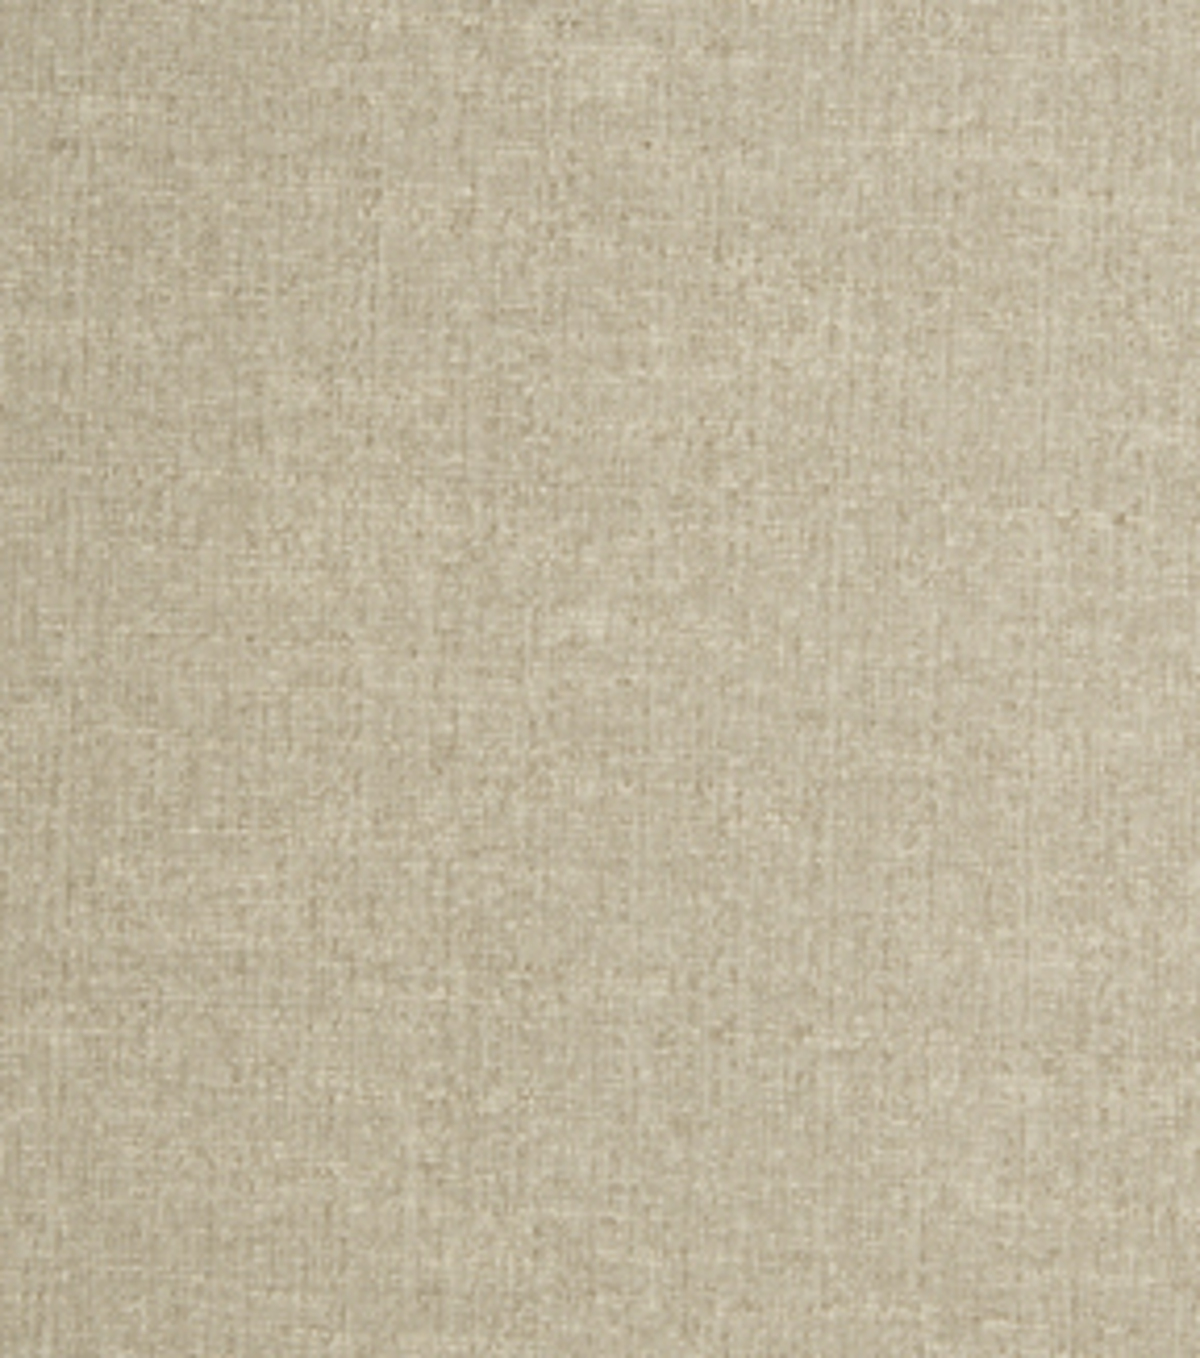 Home Decor 8\u0022x8\u0022 Fabric Swatch-Signature Series Texture Stone